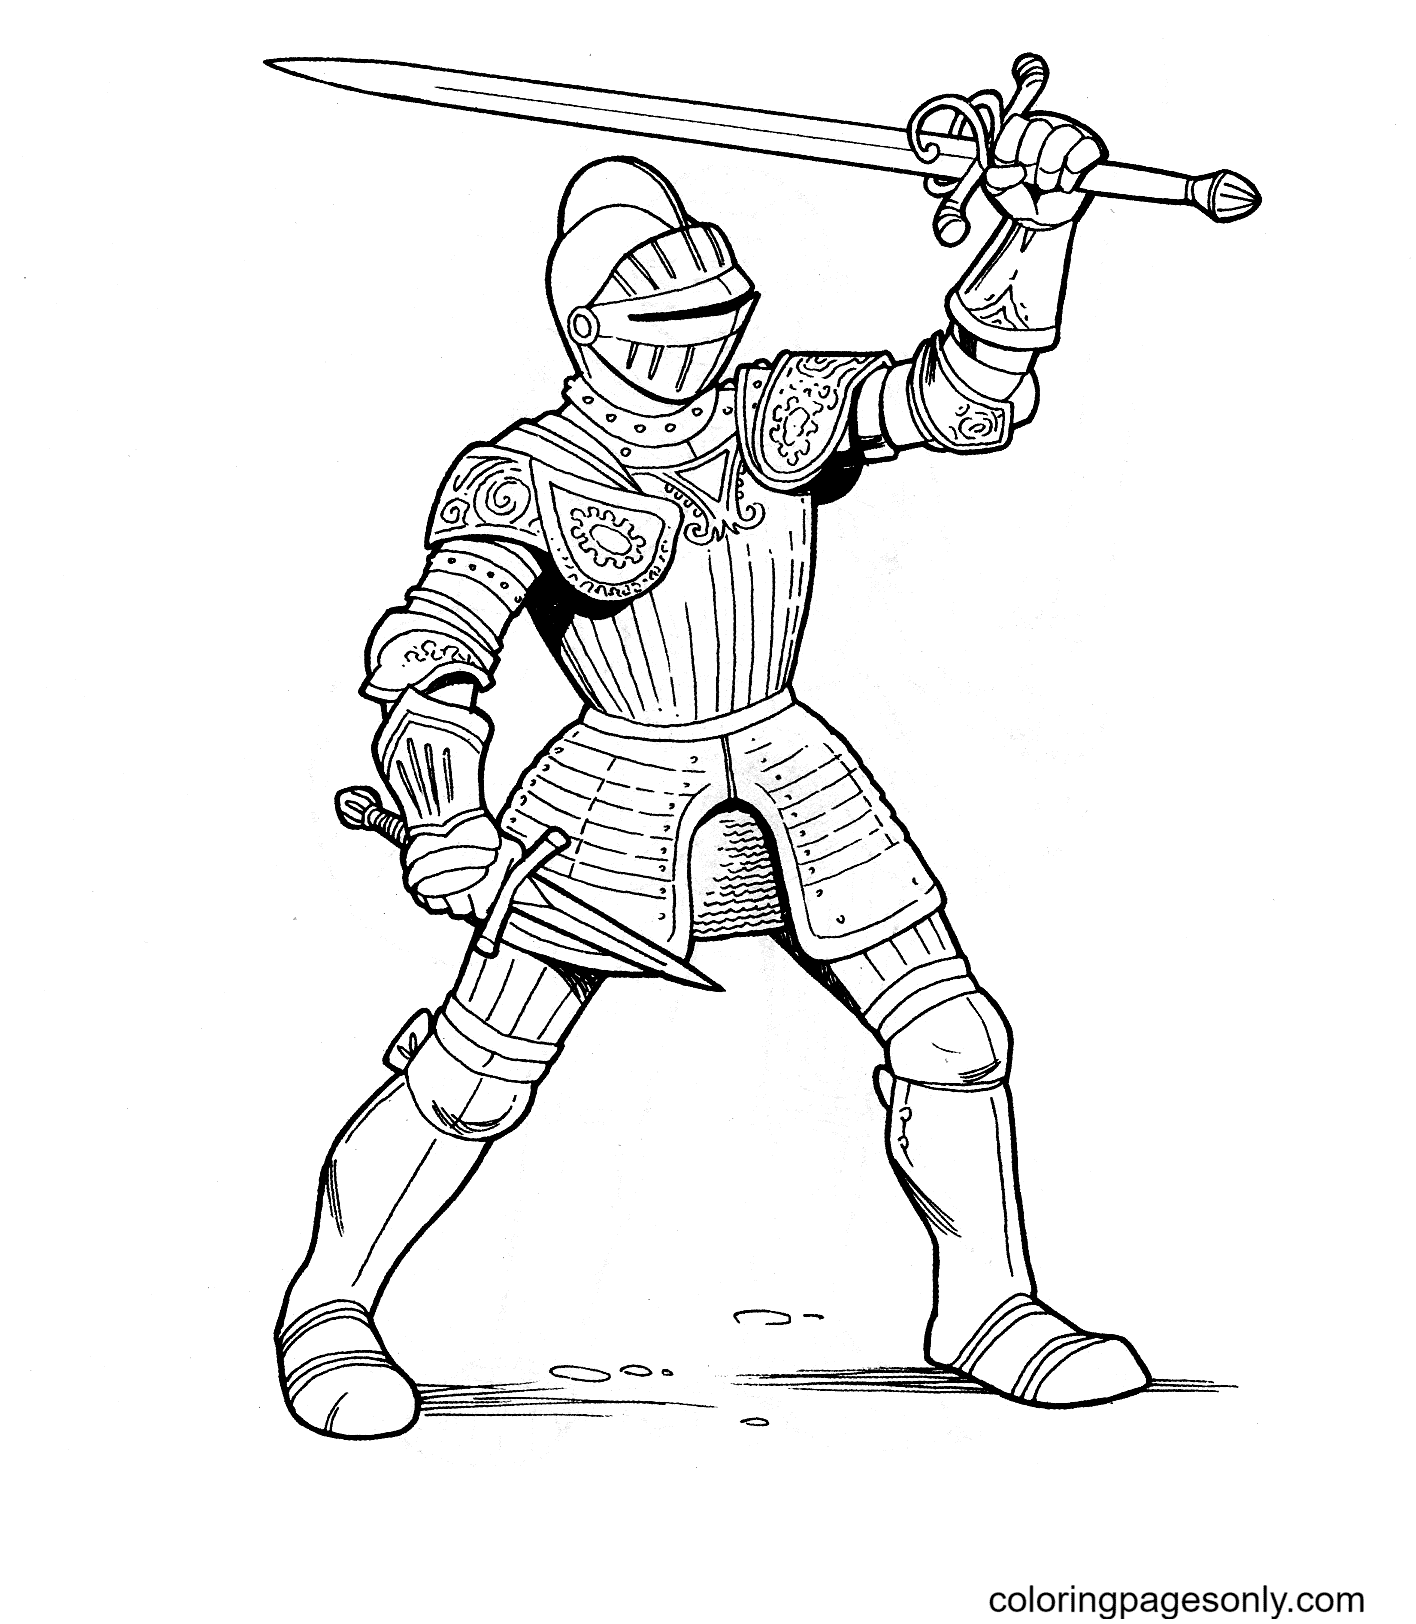 Printable Soldier Coloring Page